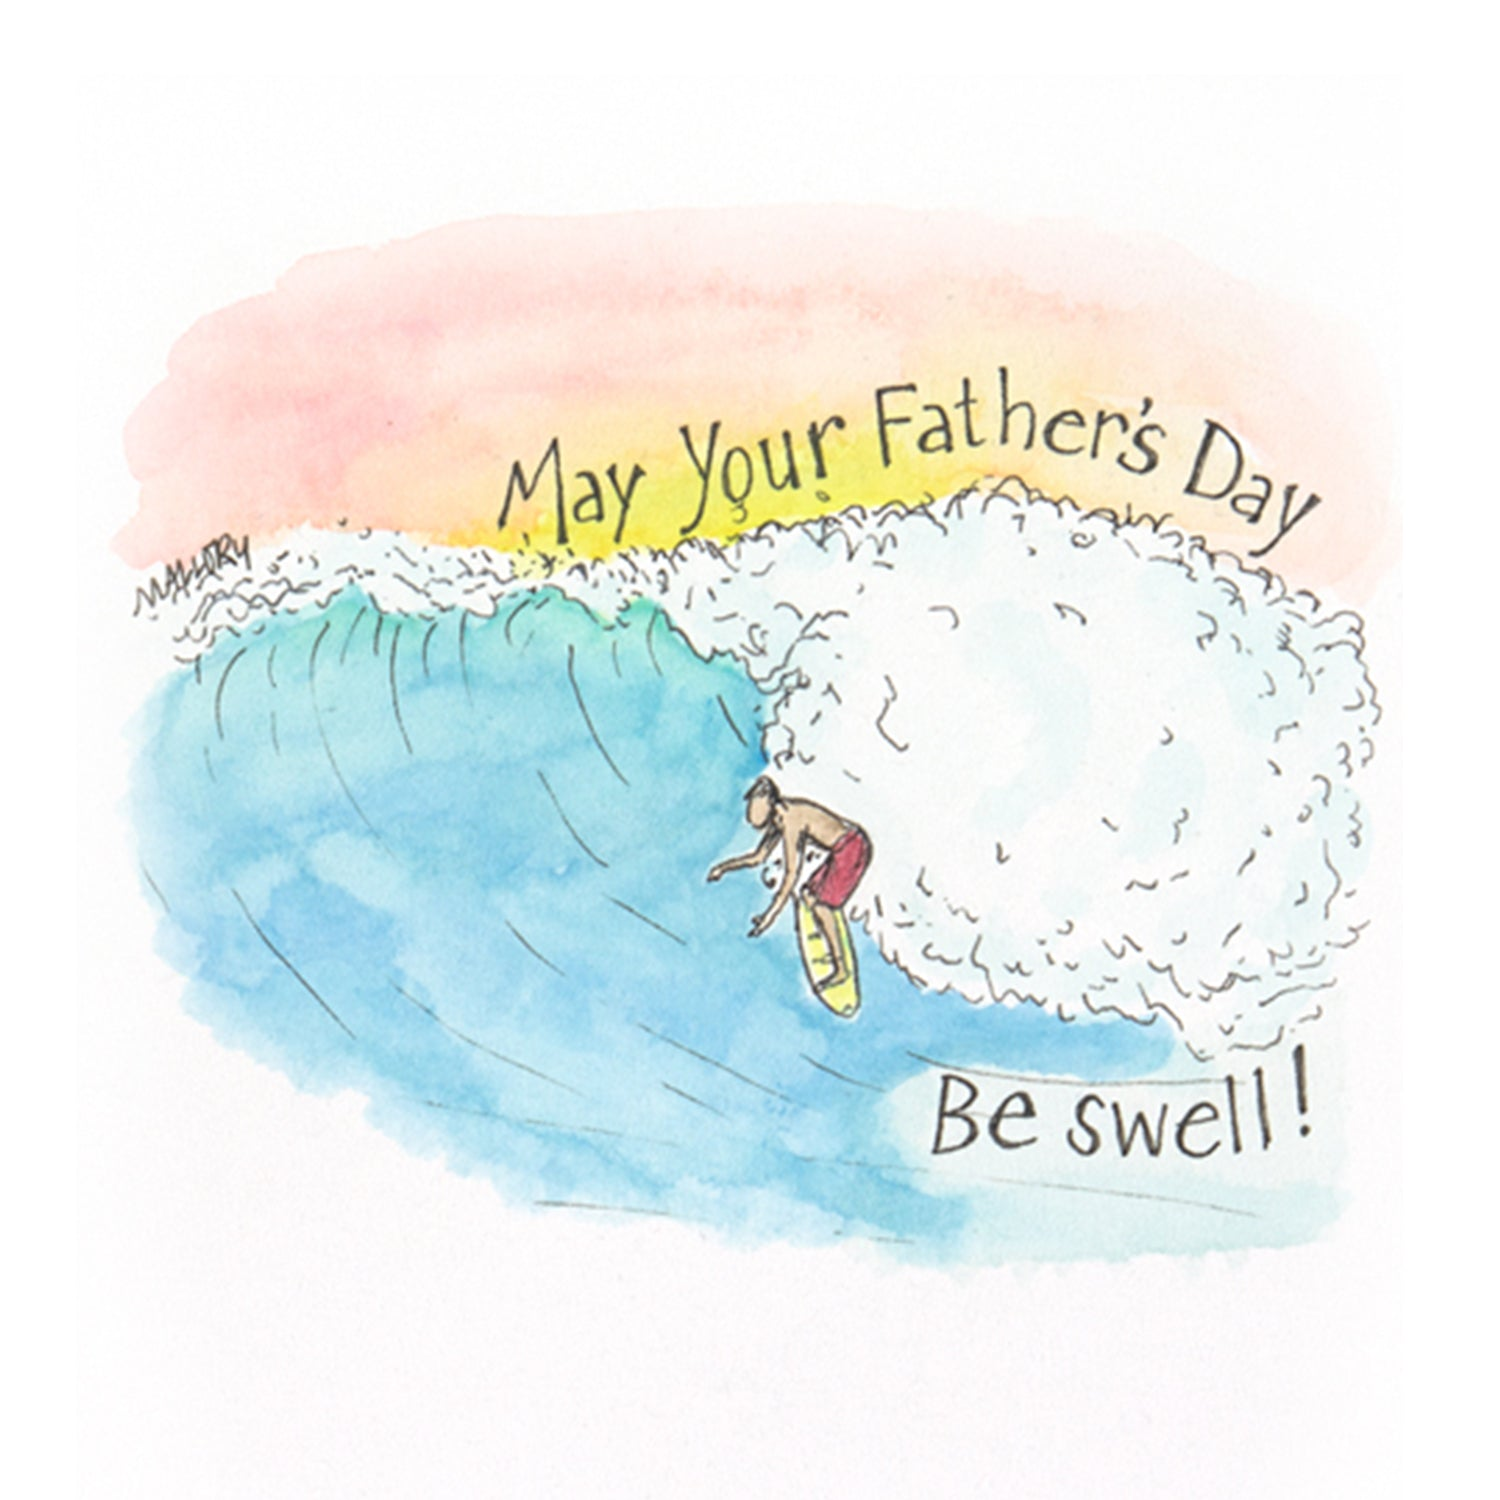 Card for surfer dad, Father's Day card for surfer, card for surf dad, beachy dad card, Father's Day card